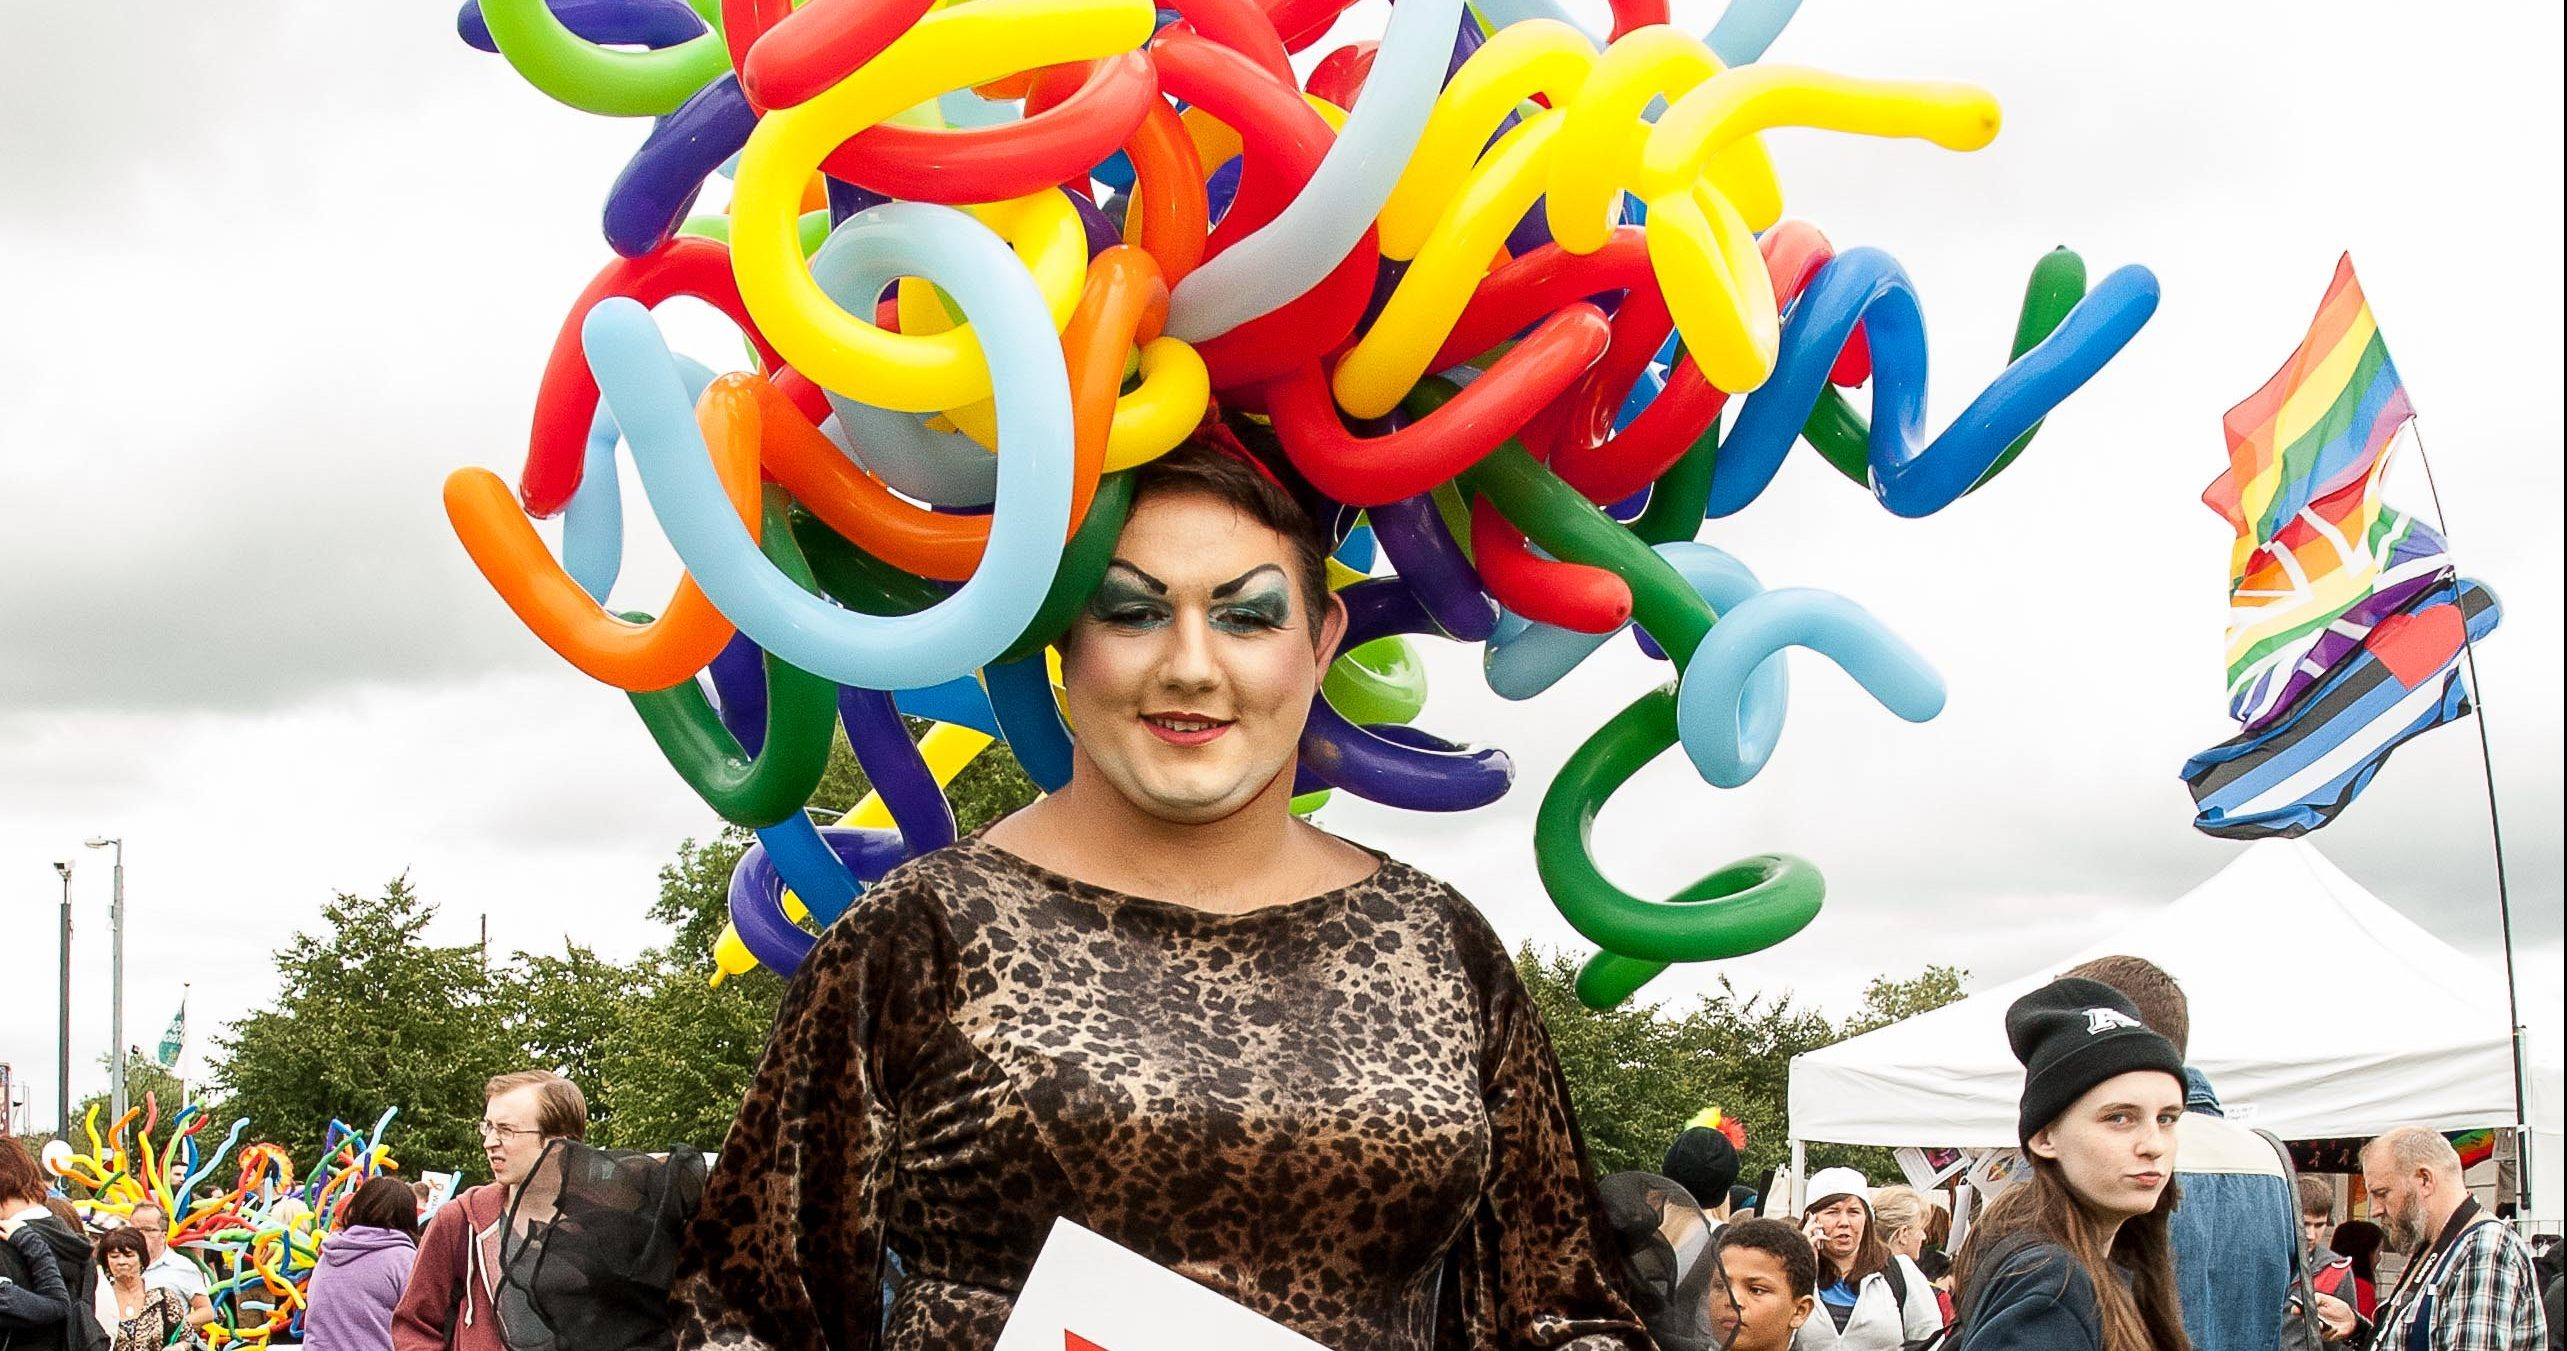 Nathan Sparling, aka drag queen Nancy Clench, will hosted the Kirkcaldy Pride event